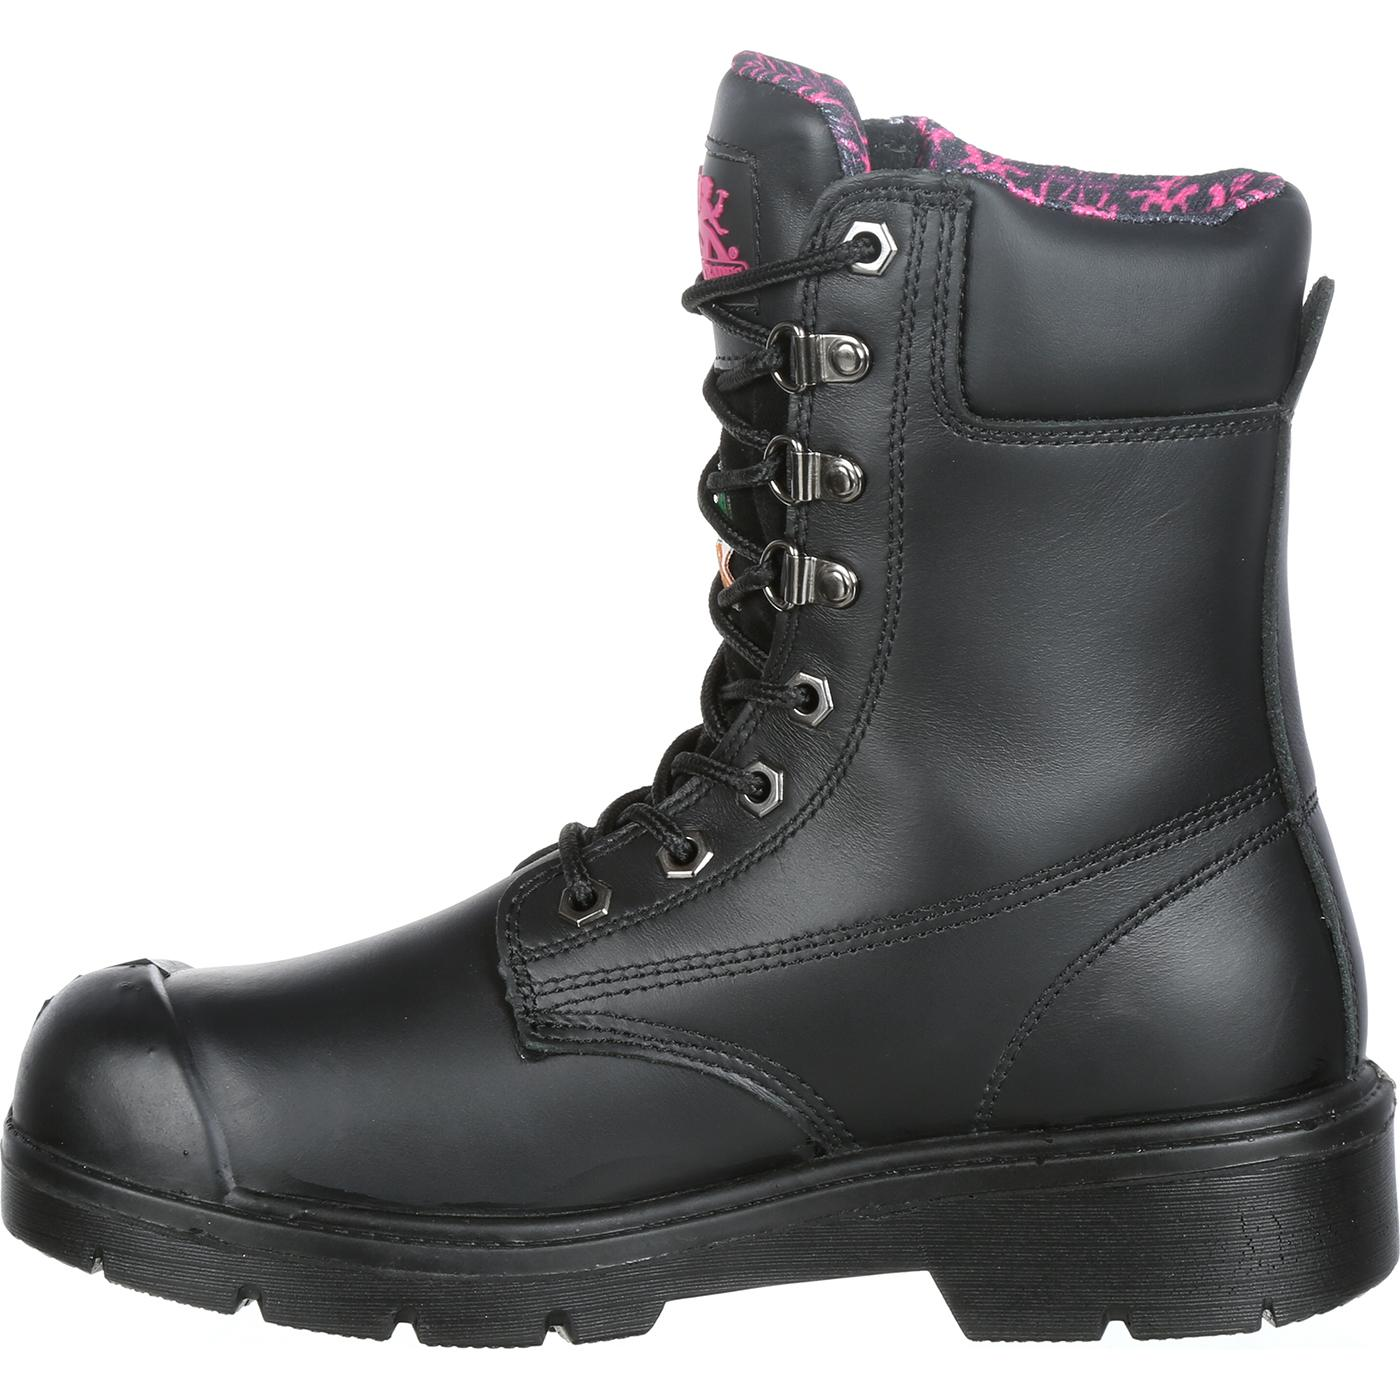 77f9b4a7d88 Moxie Trades Anne Women's Steel Toe CSA-Approved Puncture-Resistant  Waterproof Work Boot